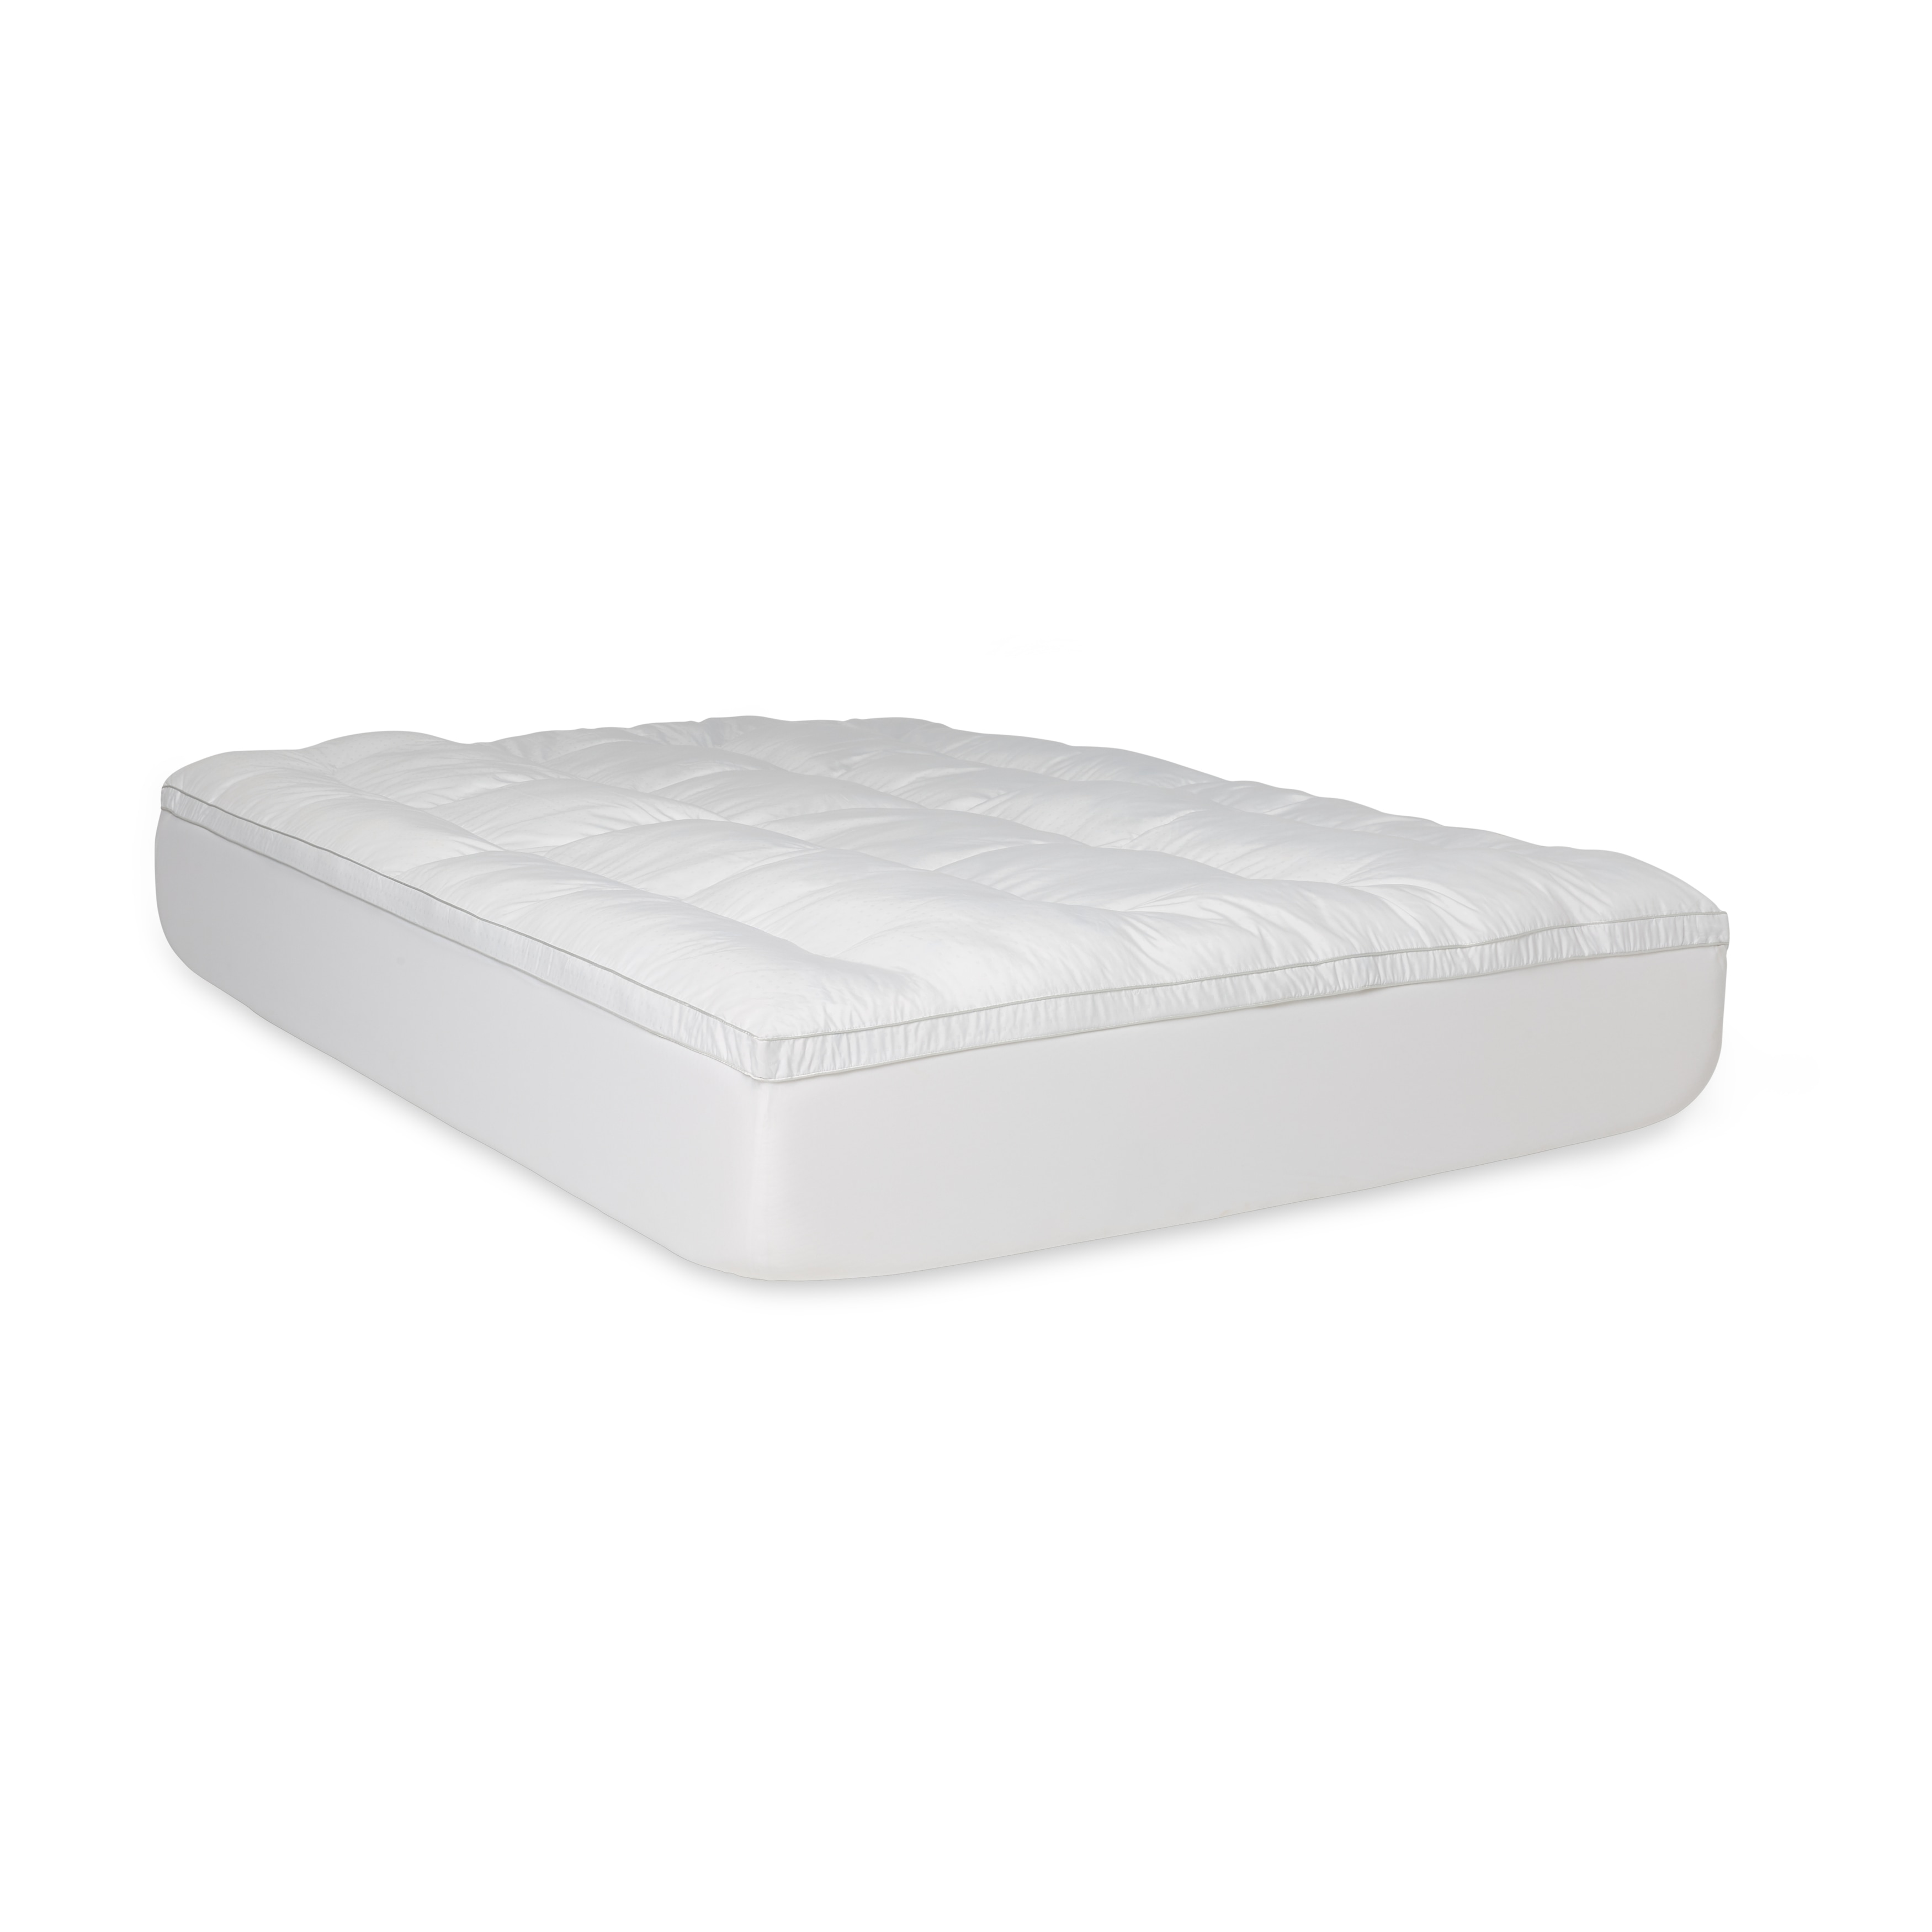 bedding down on orders overstock mattress alternative bed topper fiber product free shipping over cheer collection bath